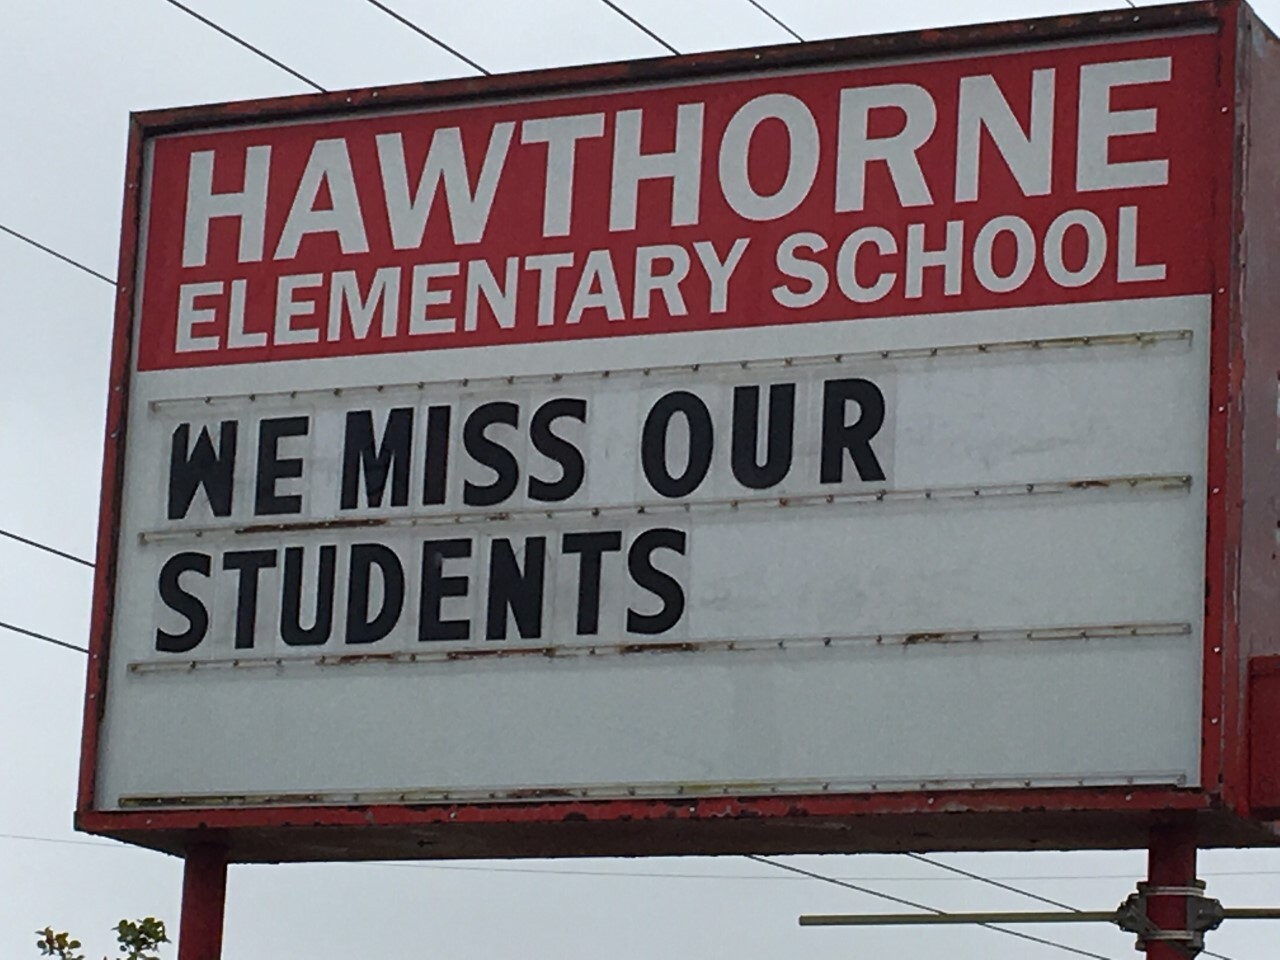 Hawthorne Elementary School - We Miss Our Students sign.jpg